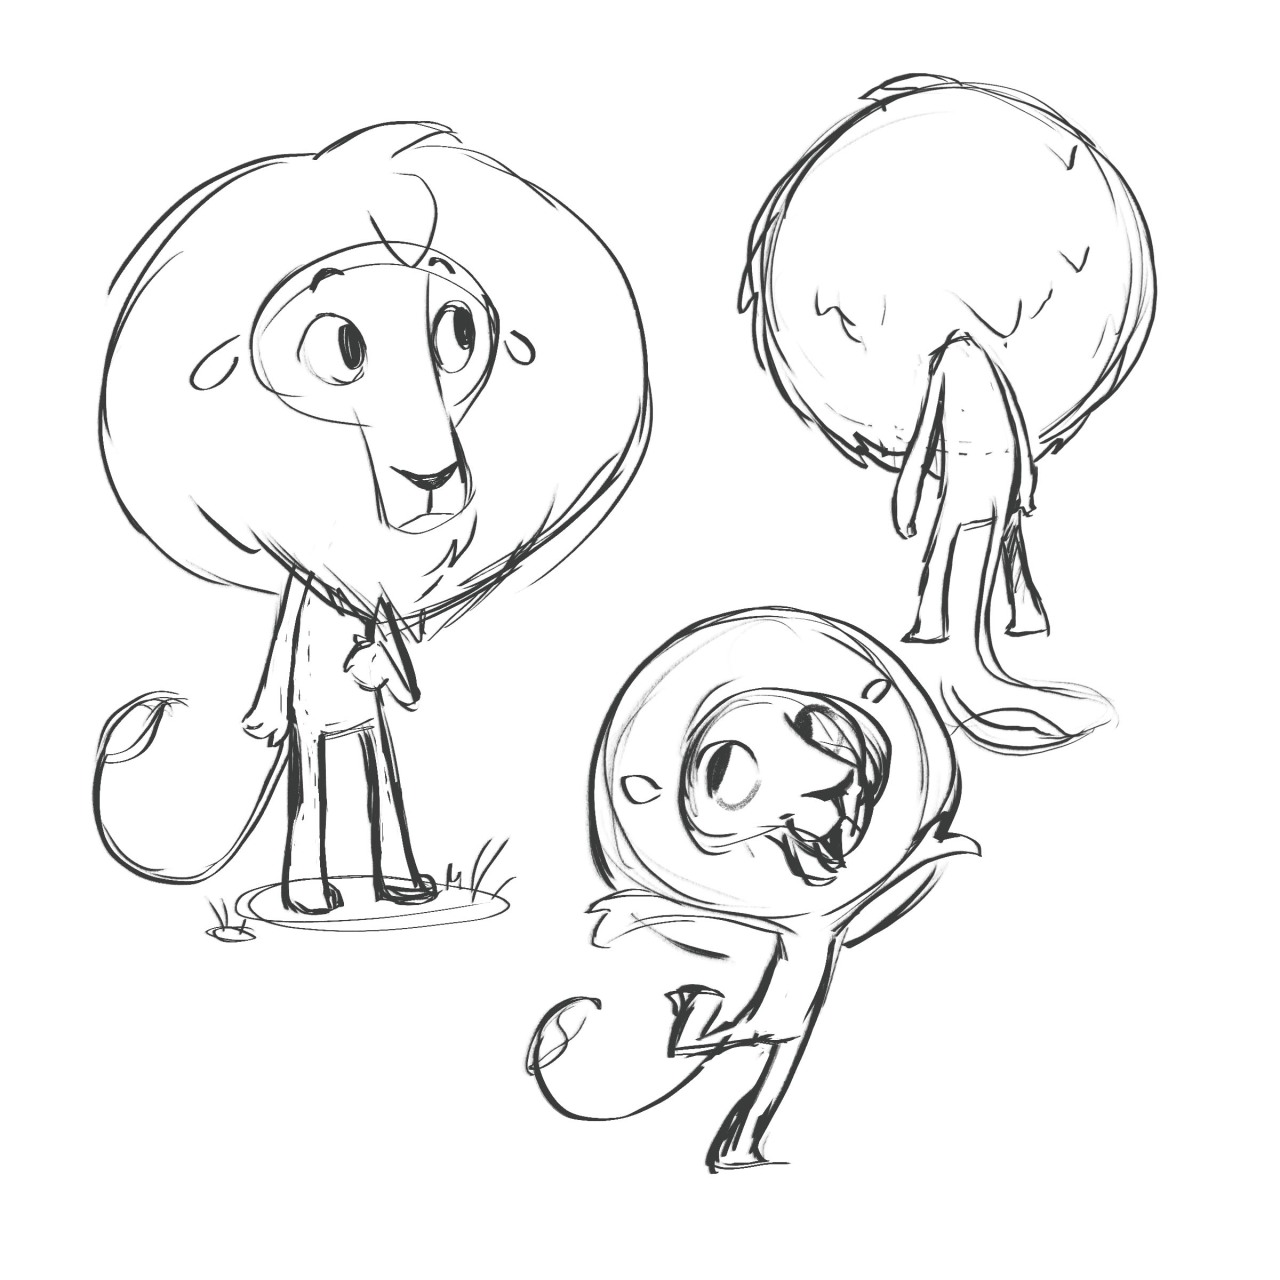 1280x1280 A Bit Of My Character Design Process